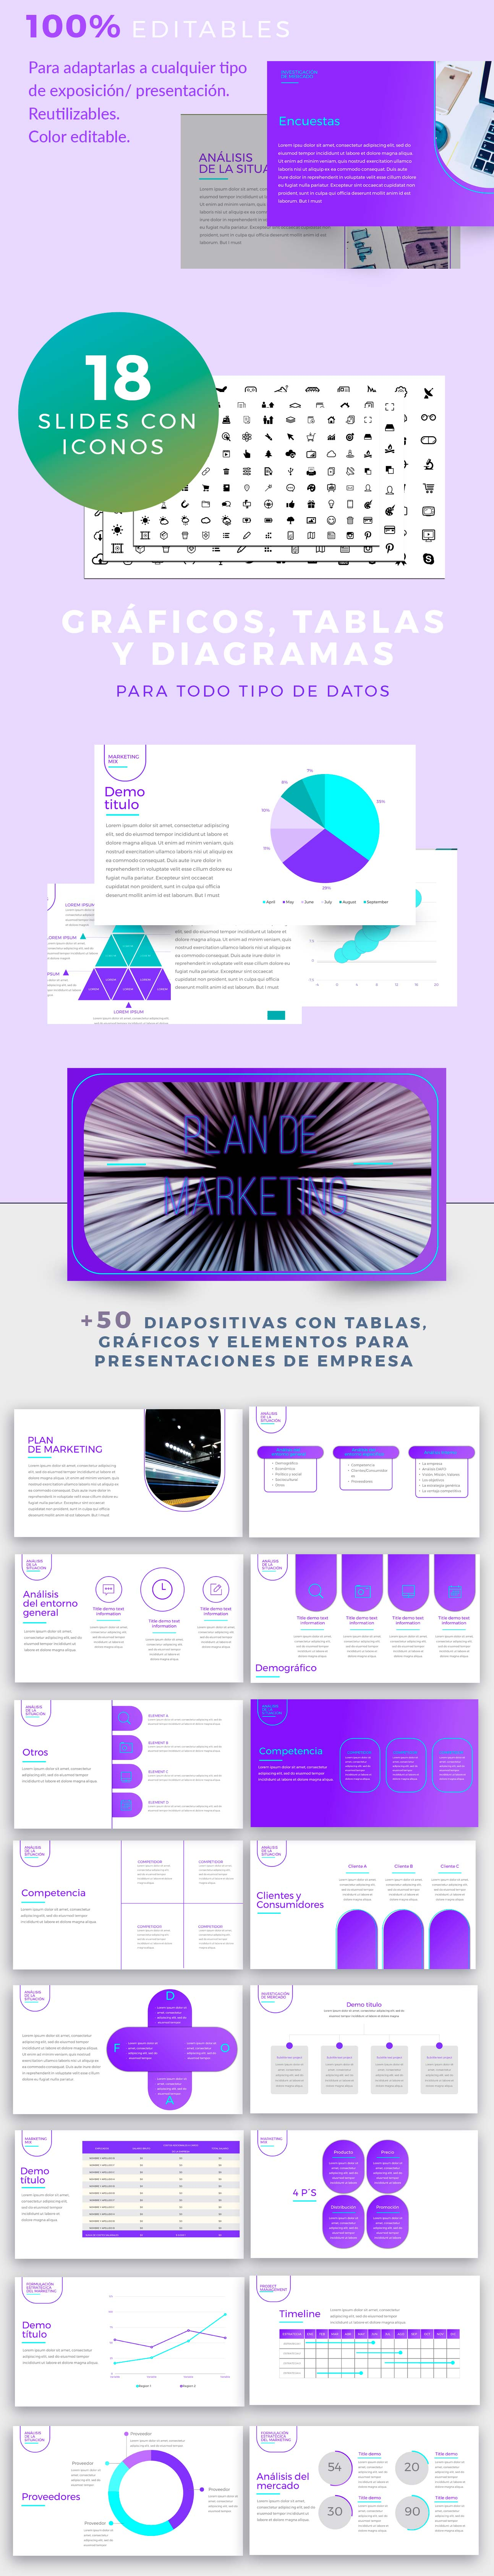 power point proyecto de marketing